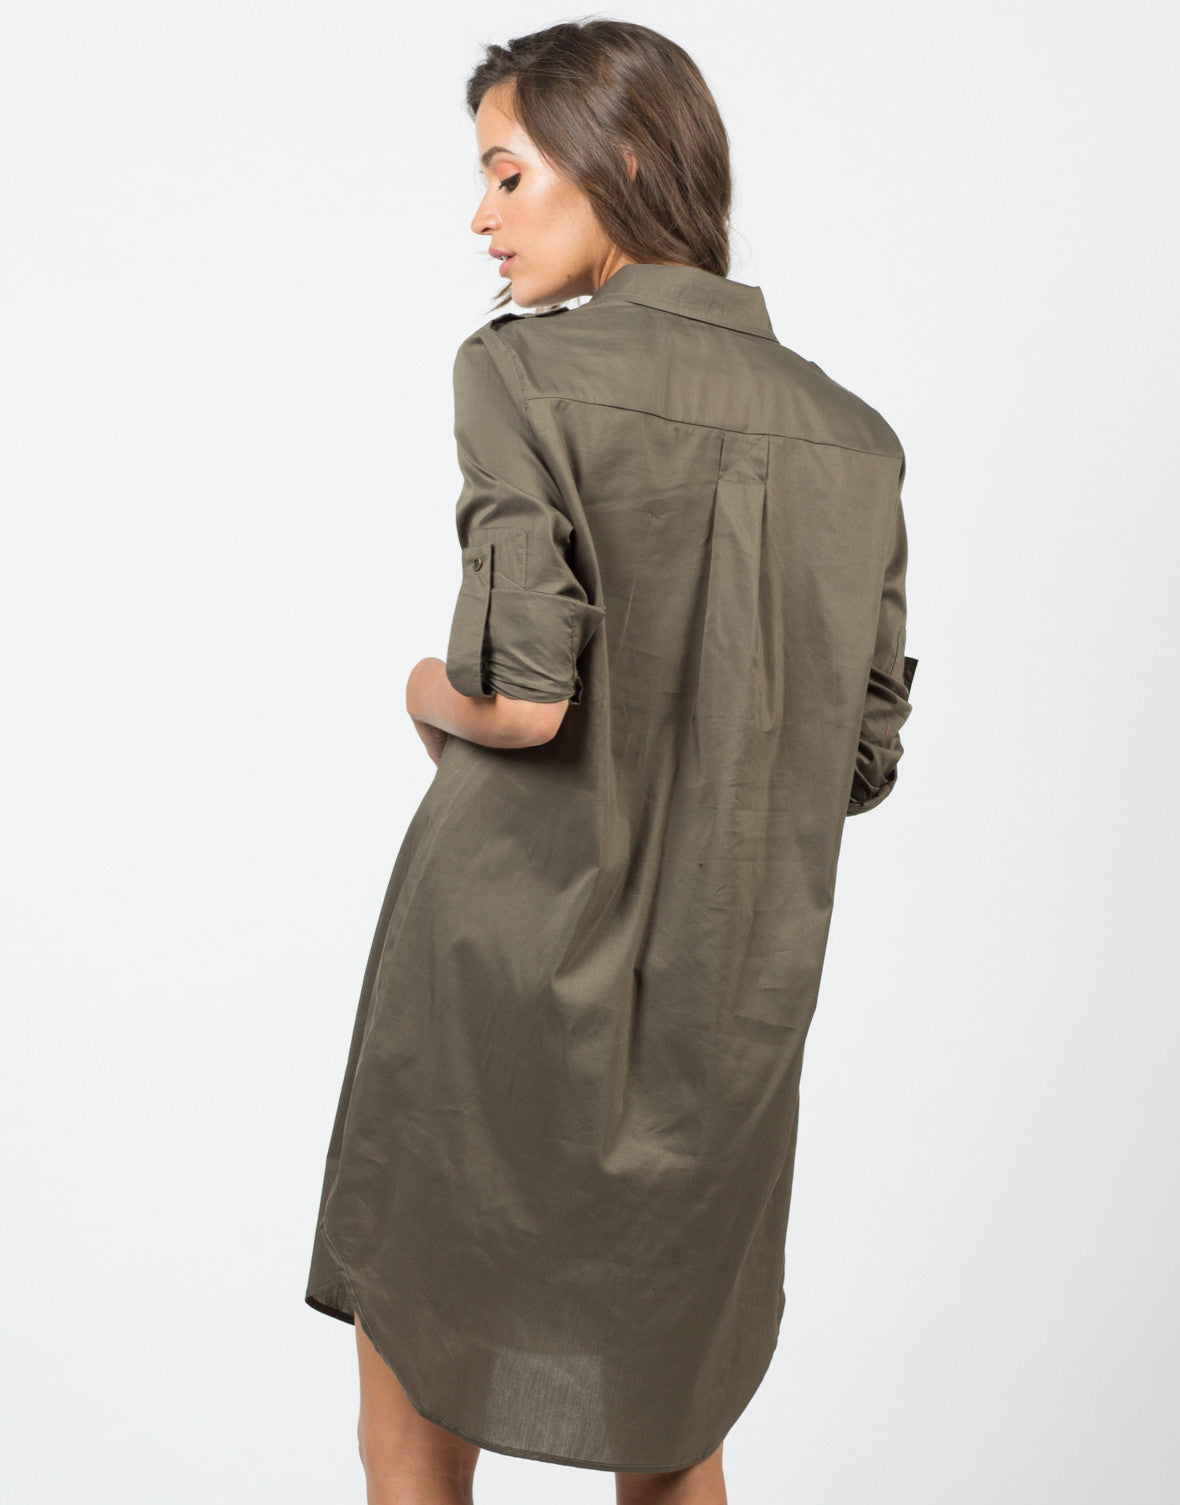 Back View of Structured Oversized Shirt Dress